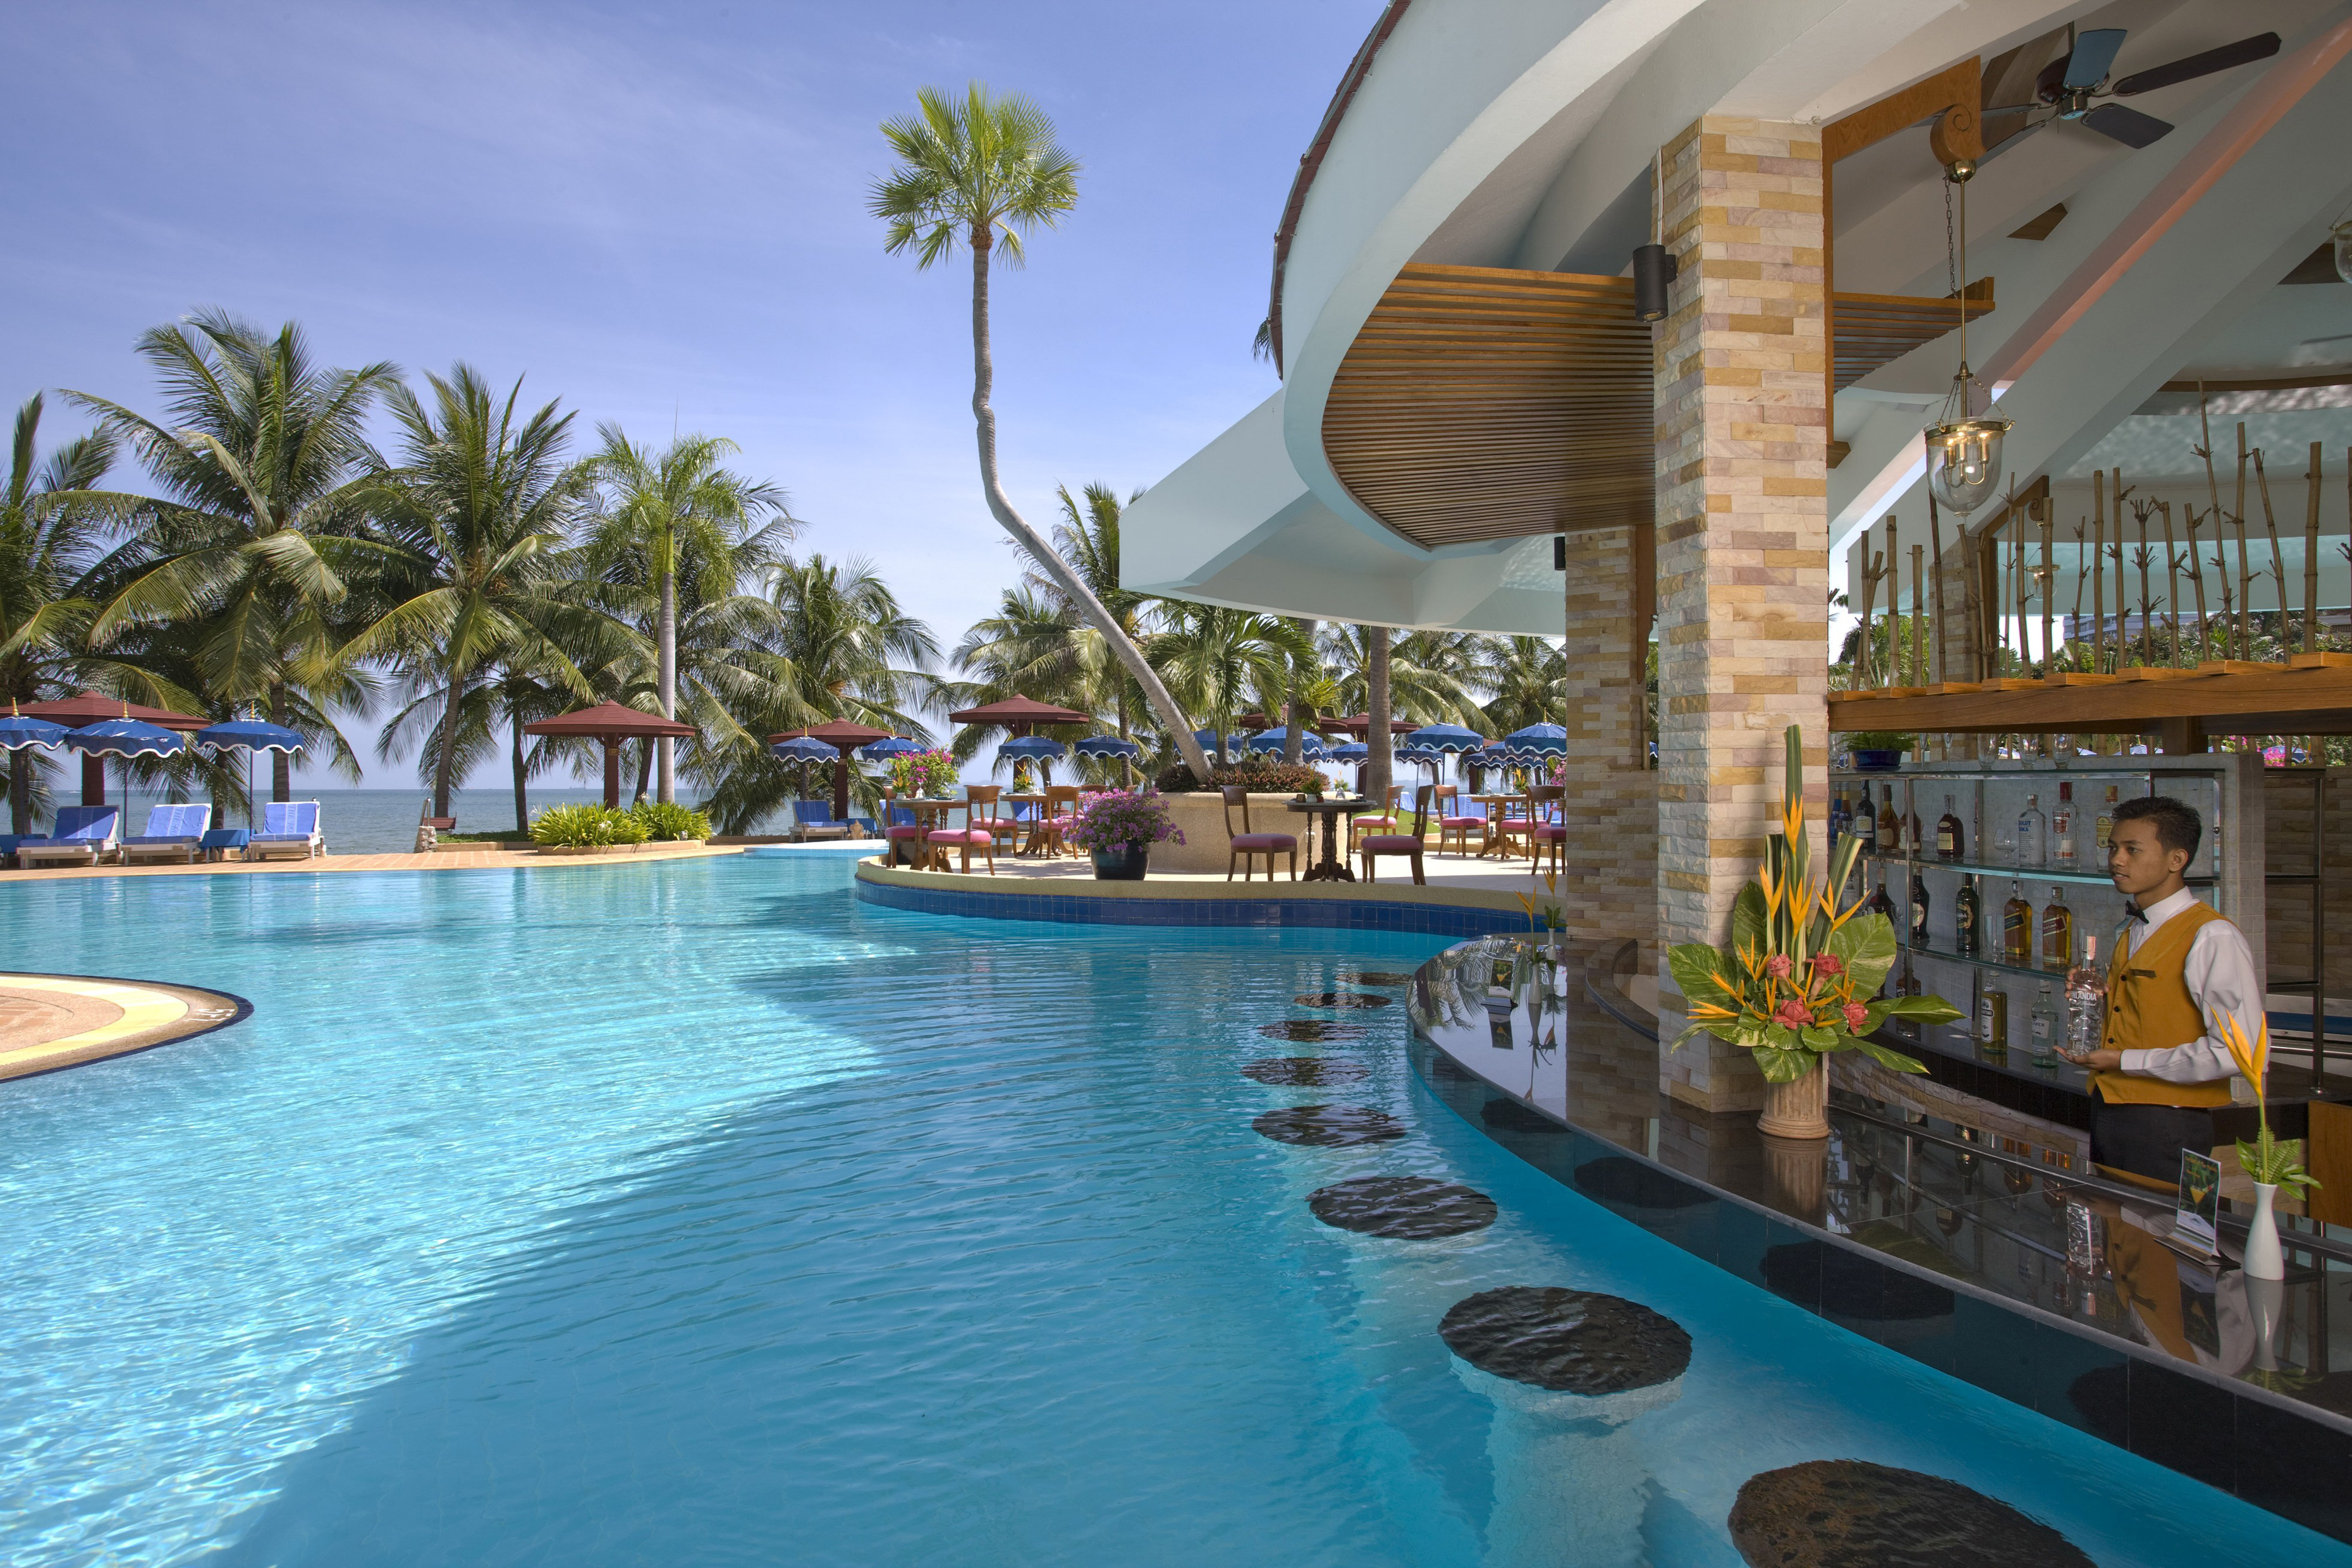 Hotels with swim up bar - Pictures of pools with swim up bars ...